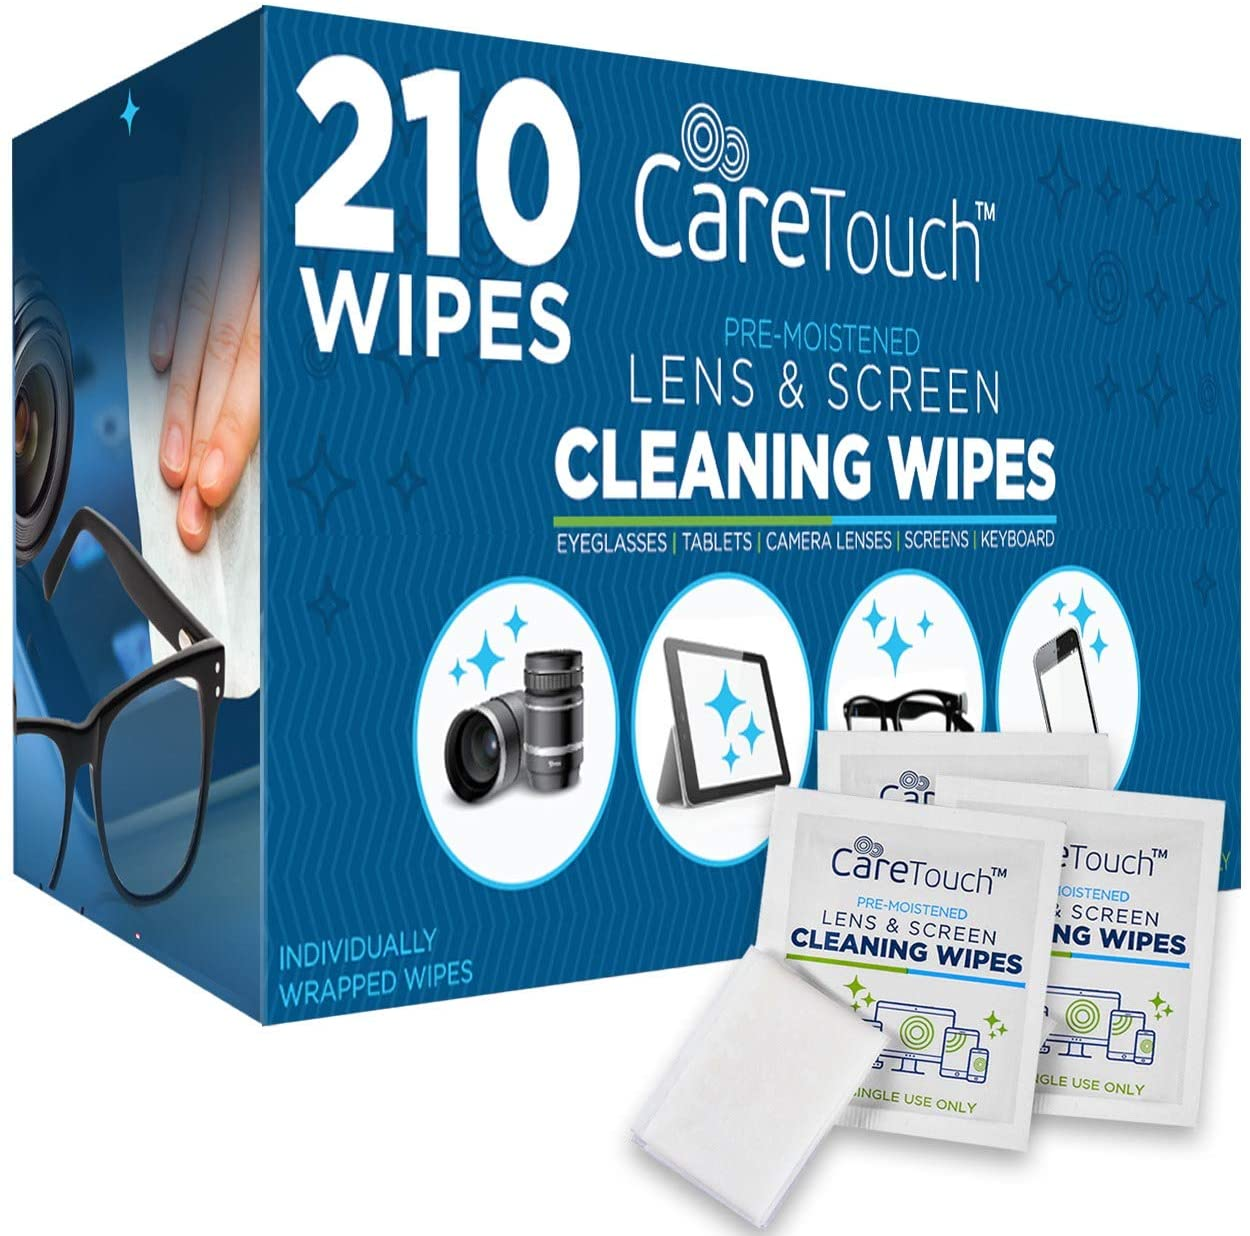 Care Touch Pre-Moistened Lens Cleaning Cloths, 210-Count